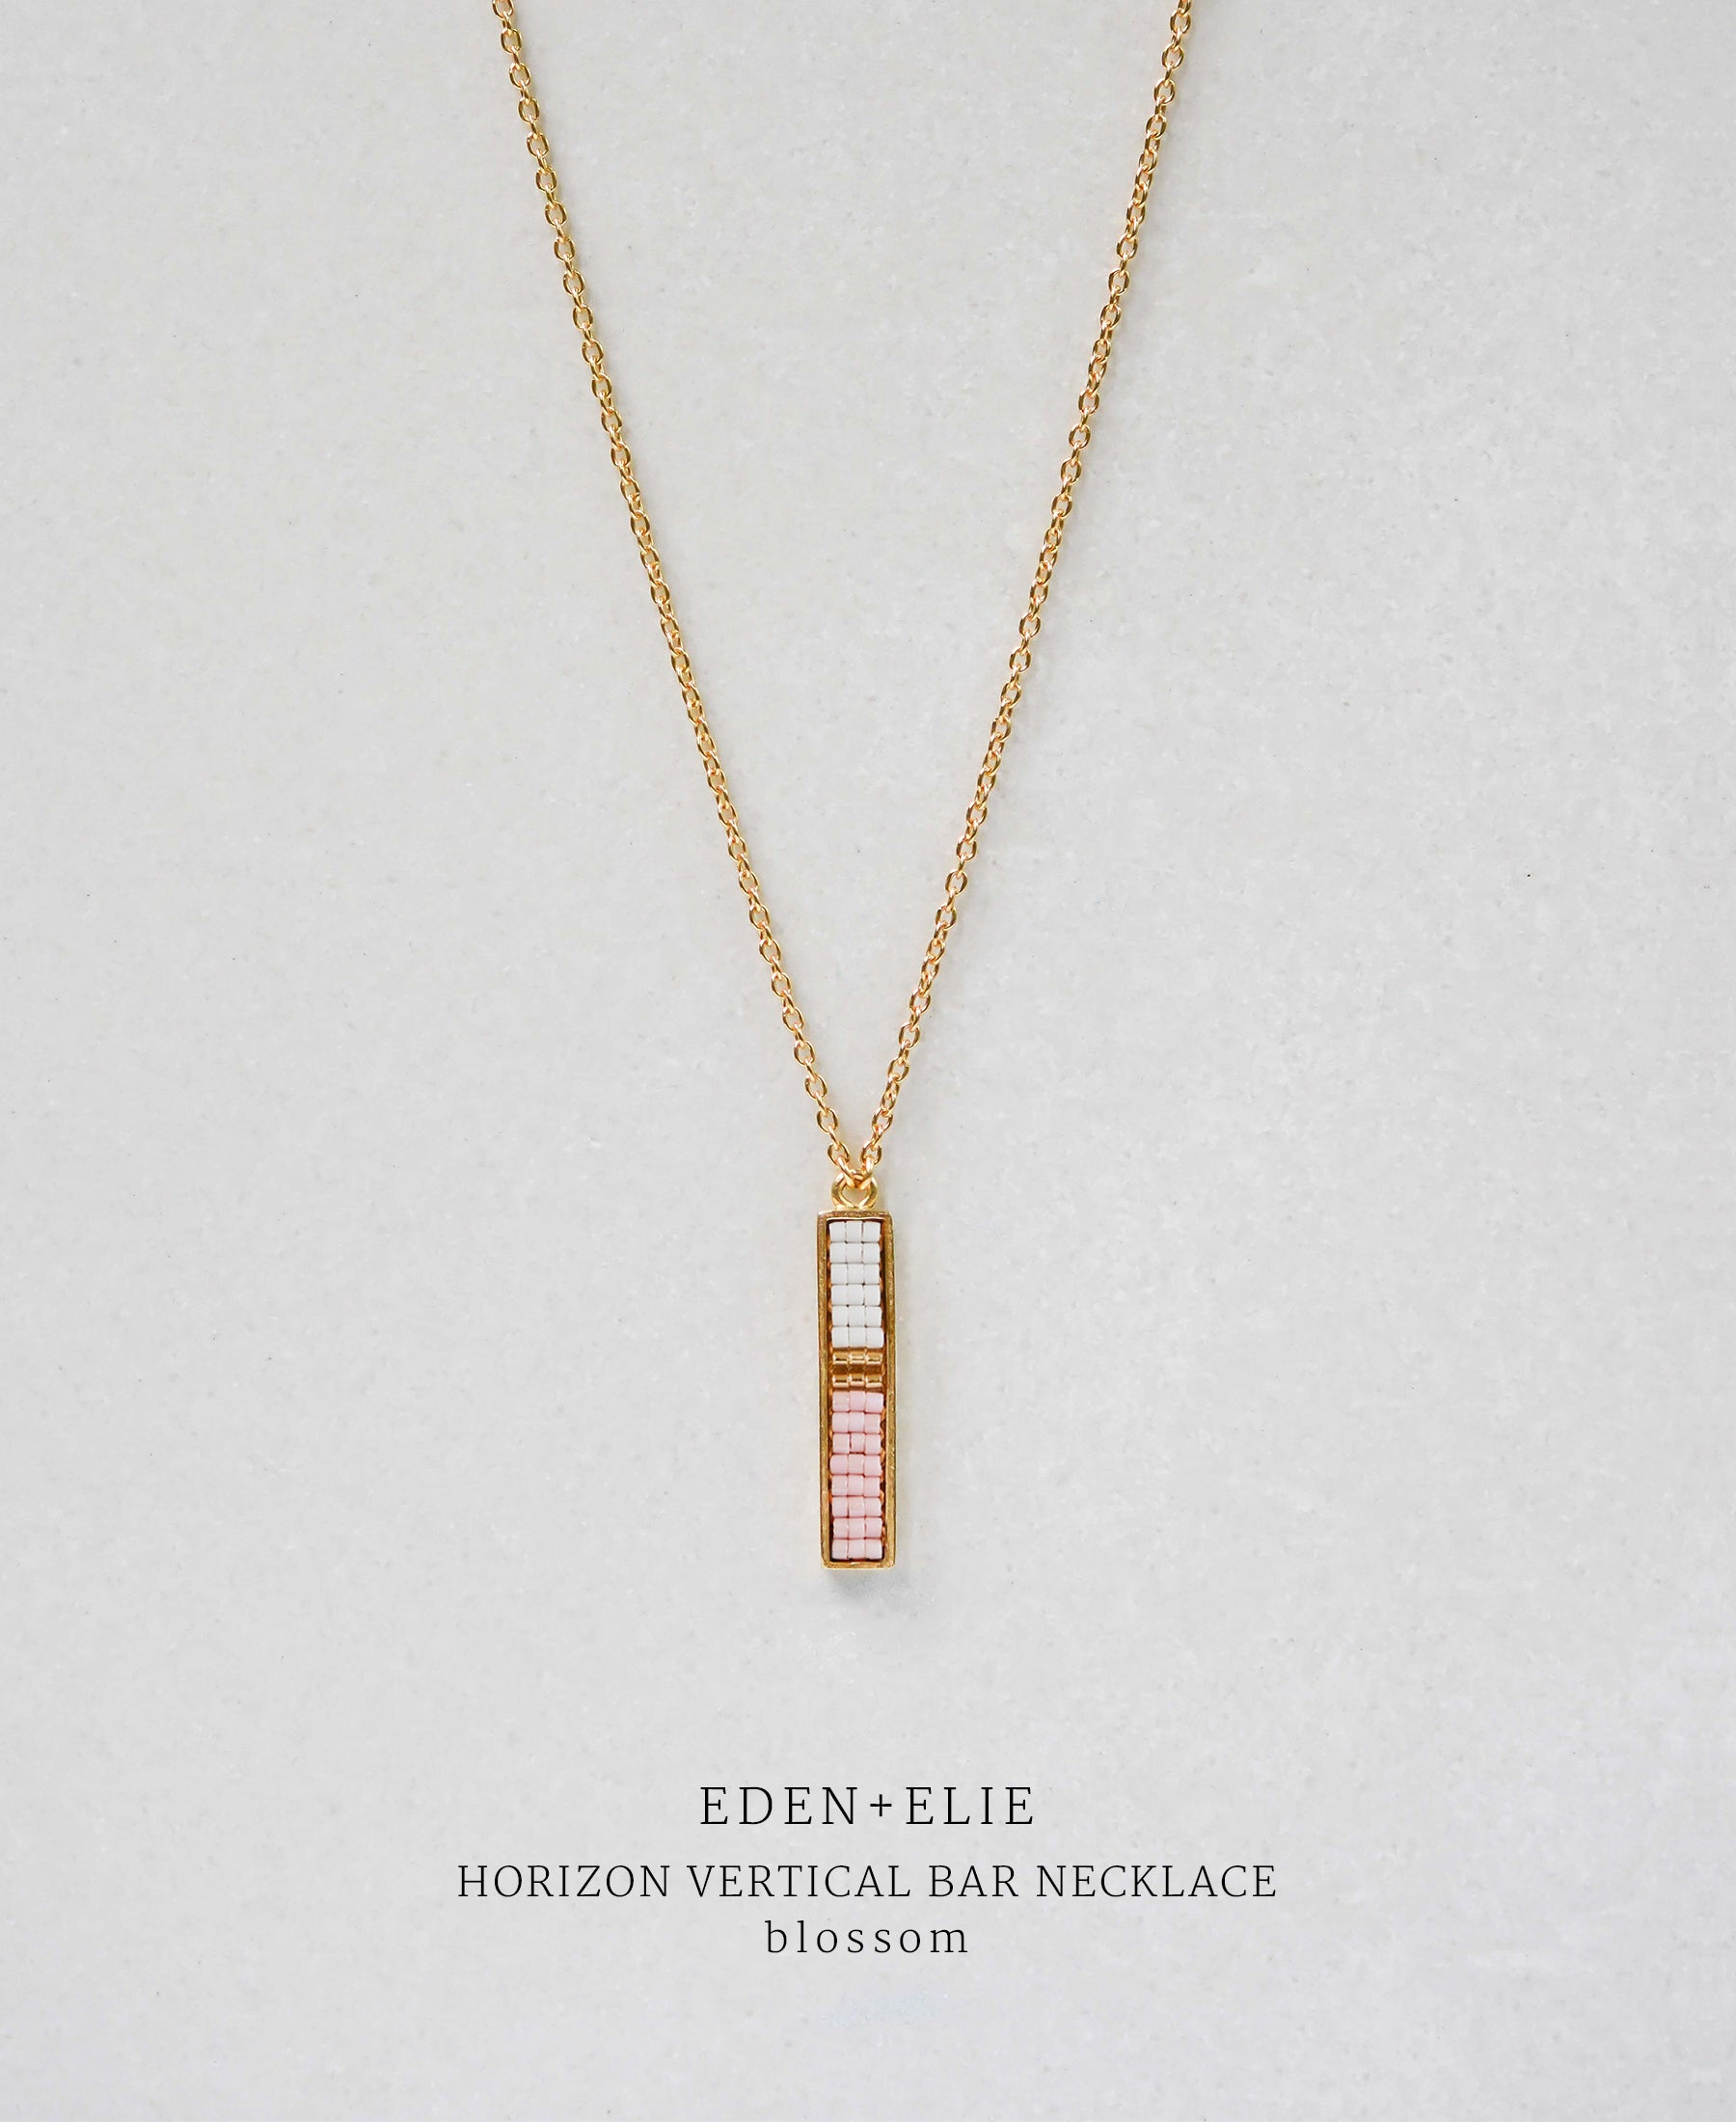 EDEN + ELIE Horizon Vertical bar necklace - blossom pink